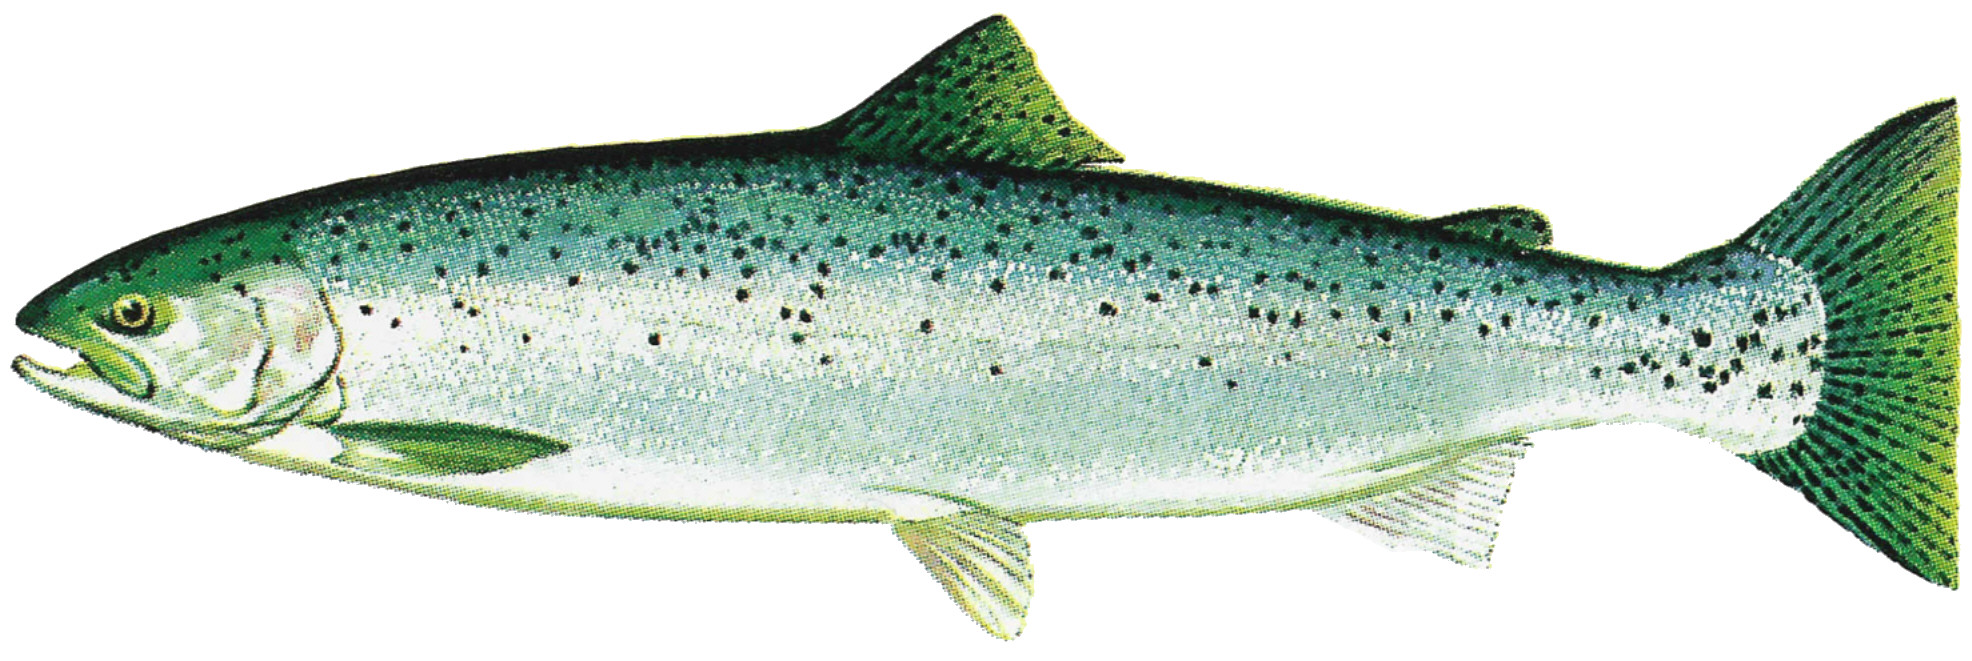 Salmon clipart cutthroat trout. Fish drawing at getdrawings